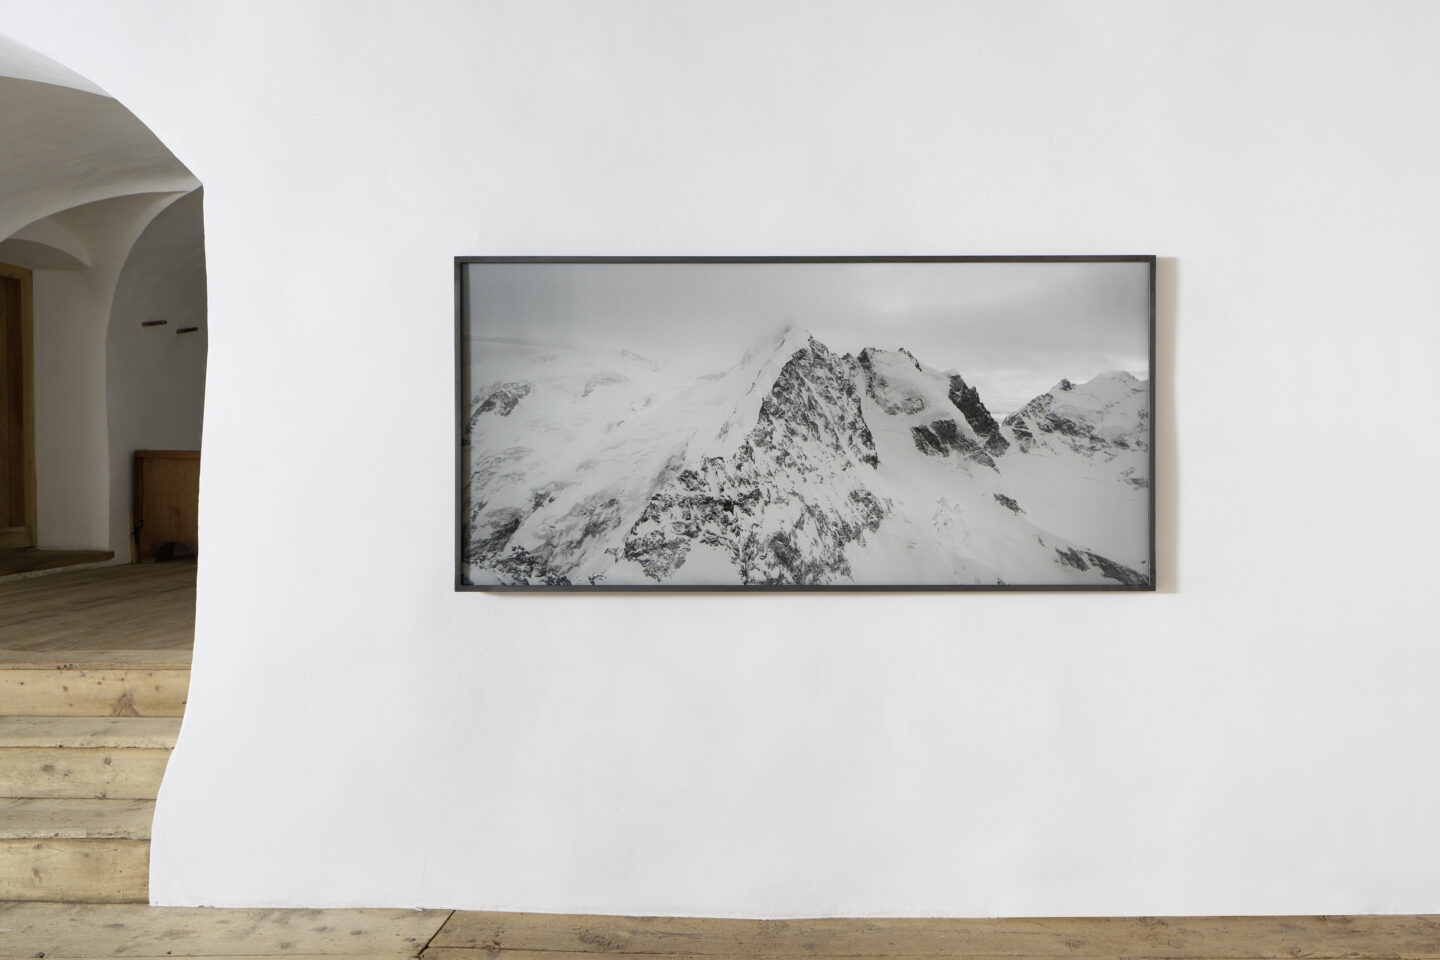 Exhibition View Groupshow «Absolutely Tschudi; view on Balthasar Burkhard, Bernina, 2004» at Galerie Tschudi, Zuoz, 2019 / Photo: Ralph Feiner, Malans / Courtesy: the artists and Galerie Tschudi, Zuoz